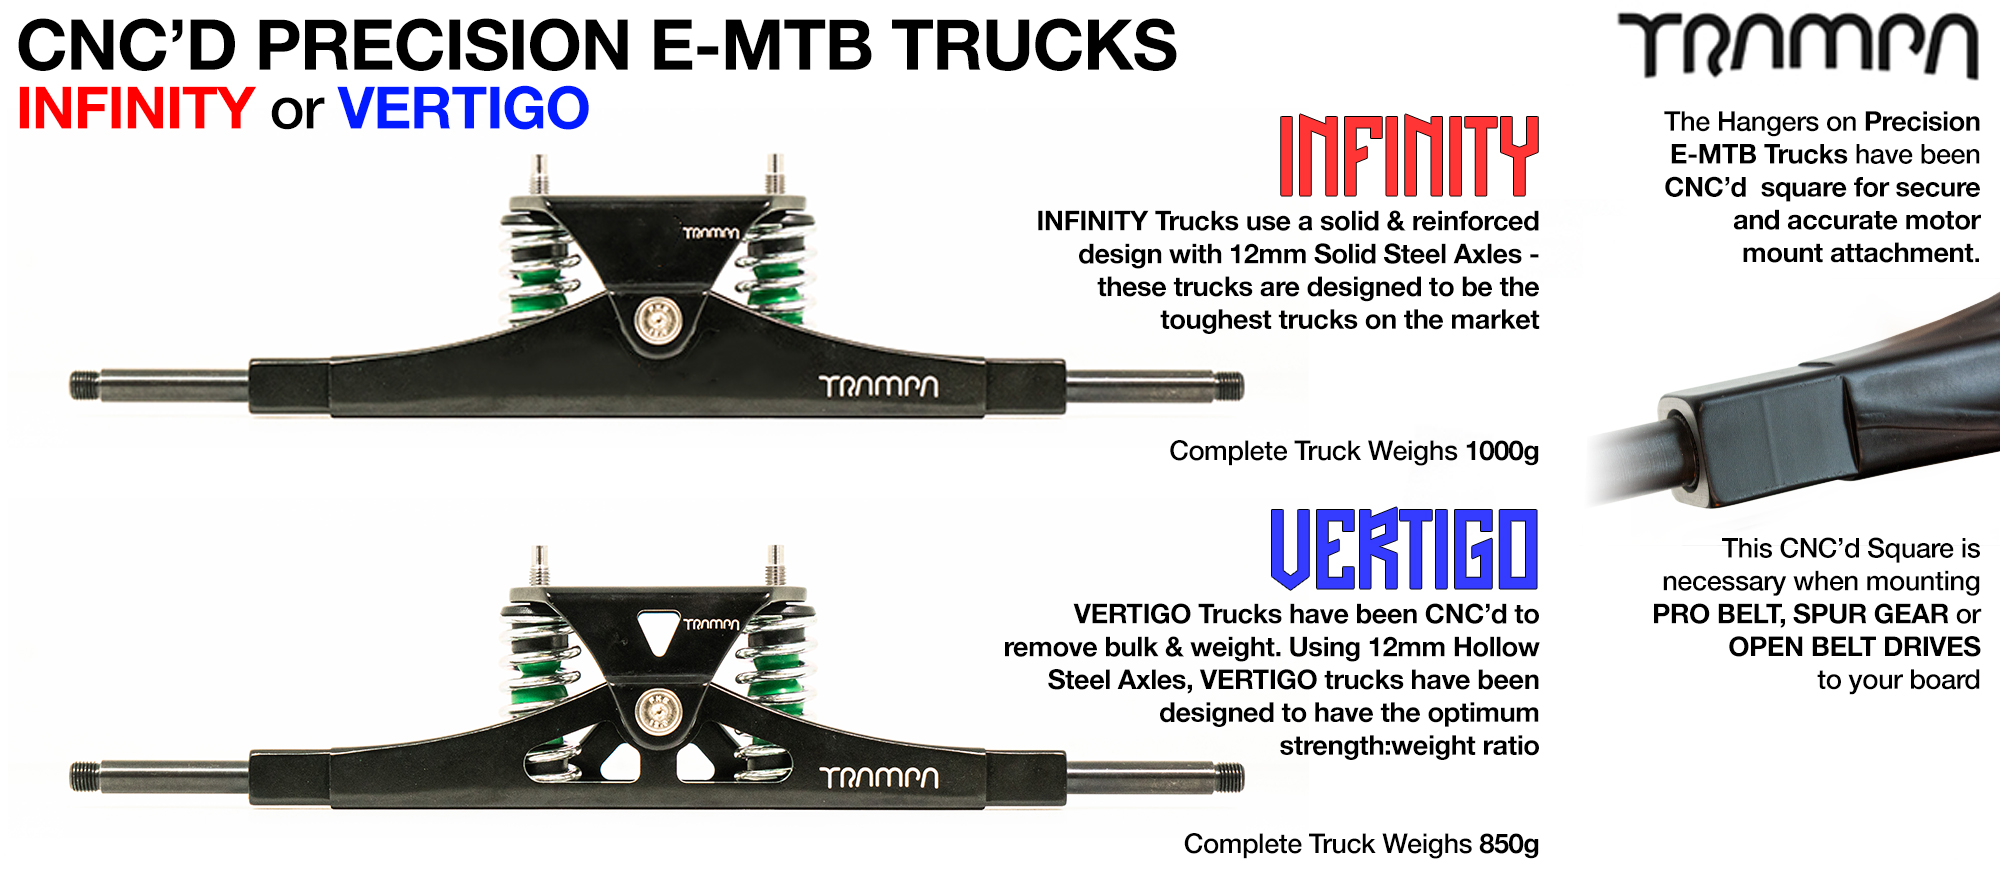 CNC Precision E-MTB Truck  - 16 inch wide with 12mm SOLID Axles with Infinity Baseplate & Steel kingpin